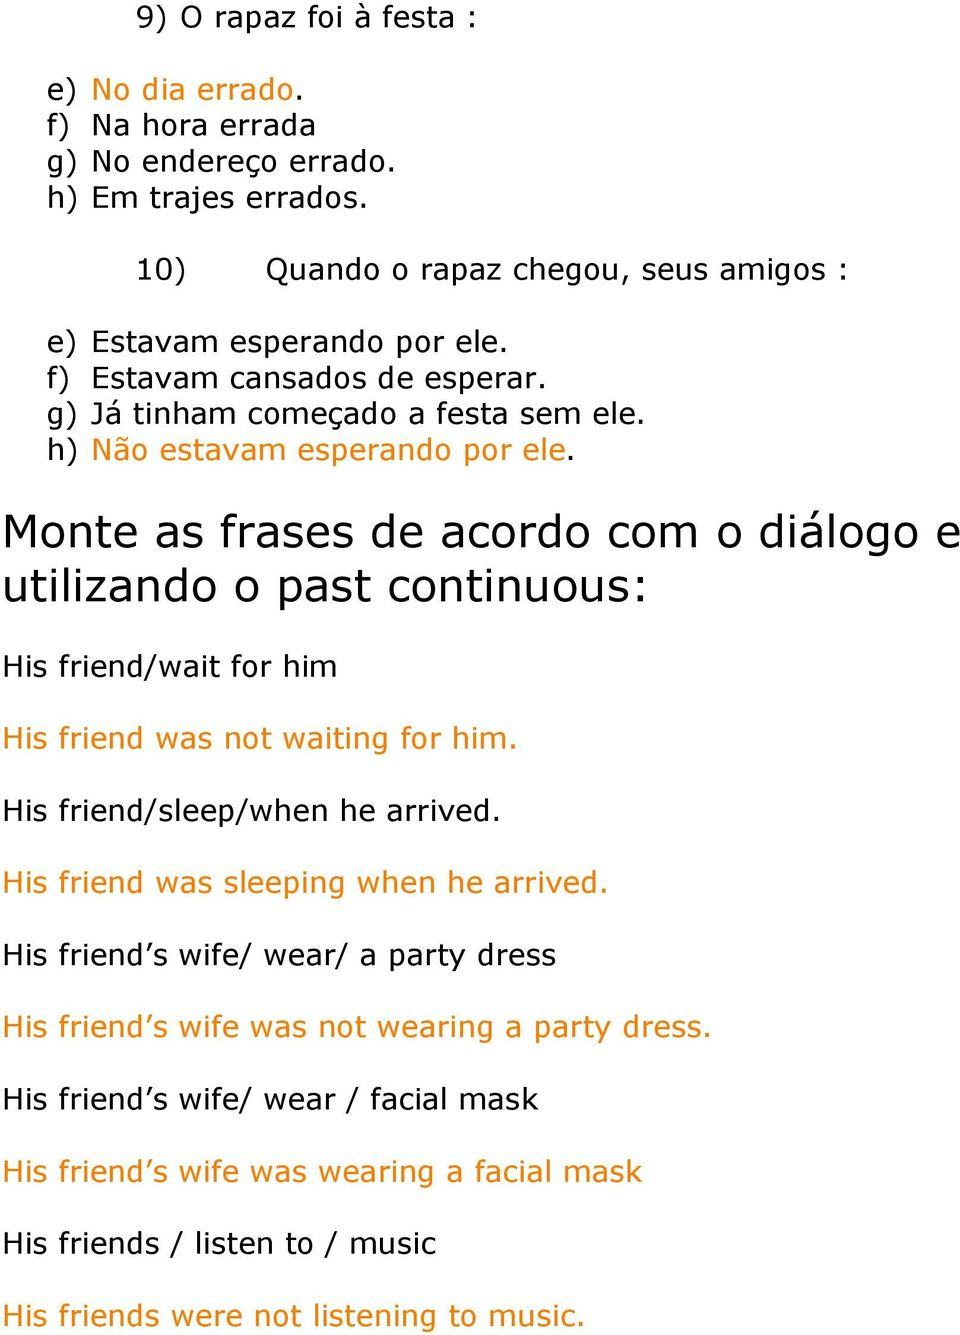 Monte as frases de acordo com o diálogo e utilizando o past continuous: His friend/wait for him His friend was not waiting for him. His friend/sleep/when he arrived.